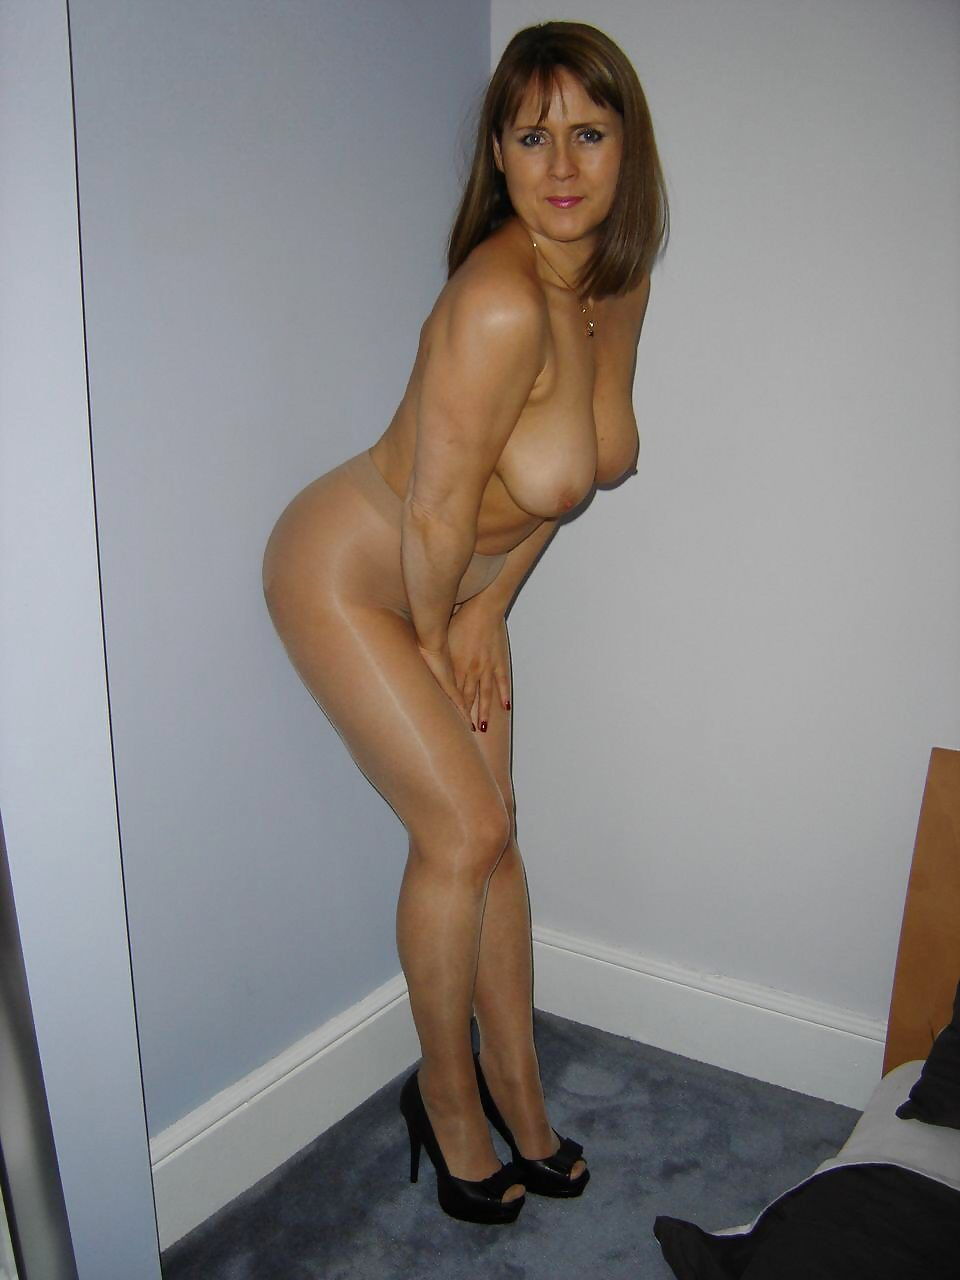 Lovely milf shows hot nude body